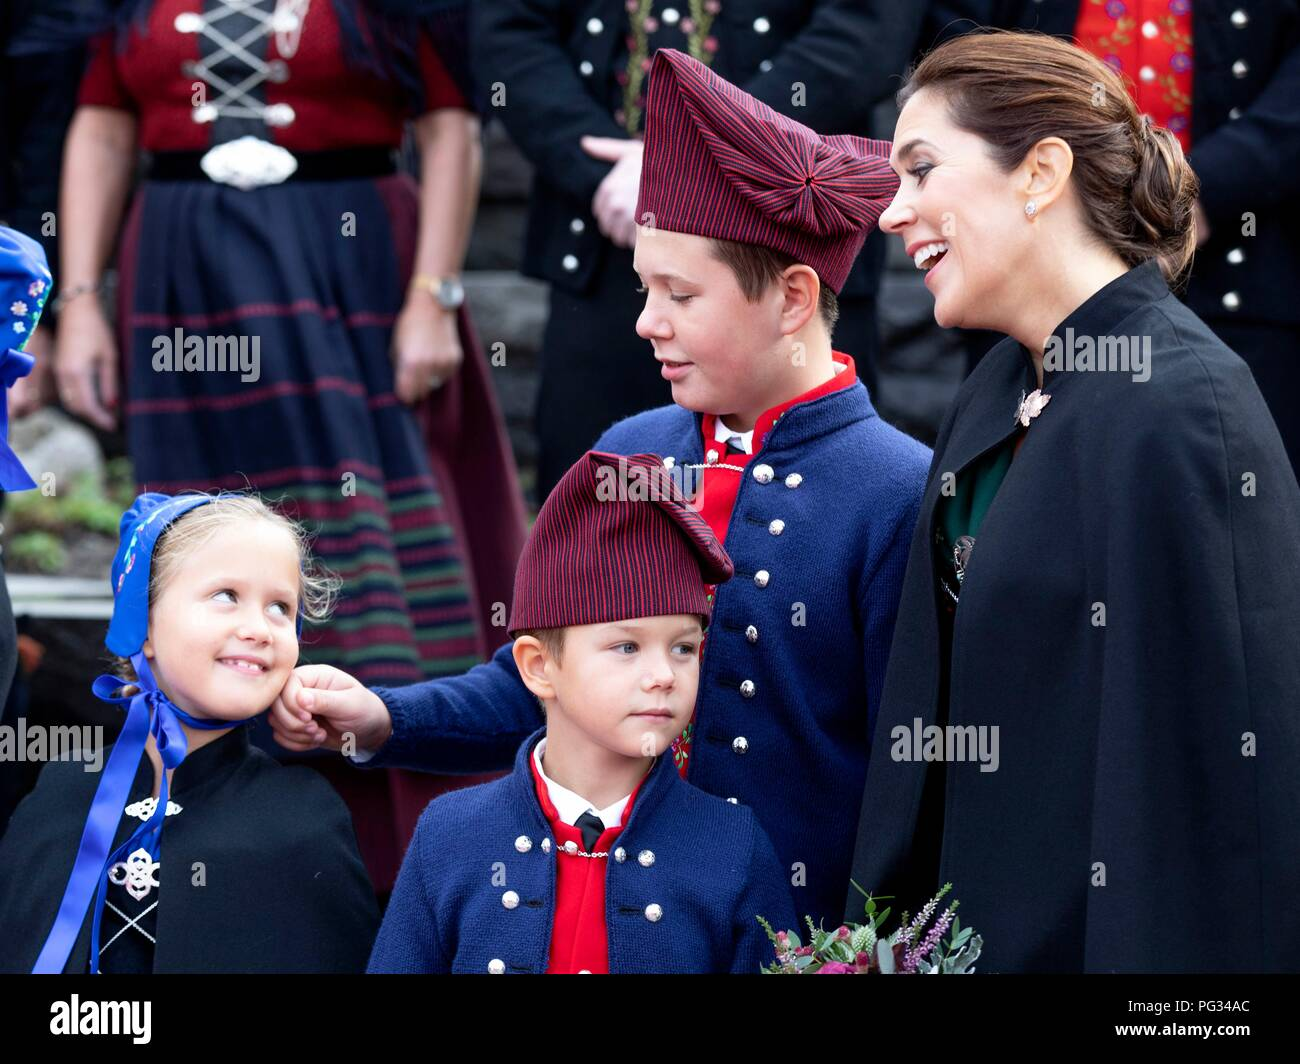 Torshavn, Faroe Islands, Denmark. 23rd Aug, 2018. Crown Princess Mary, Prince Christian, Princess Isabella, Prince Vincent and Princess Josehpine of Denmark arrive with the The Royal Ship, HDMY Dannebrog at Bursatangi, on August 23, 2018, on the 1st of the 4 days visit to the Faroe Islands Photo : Albert Nieboer/ Netherlands OUT/Point de Vue OUT | Credit: dpa/Alamy Live News - Stock Image